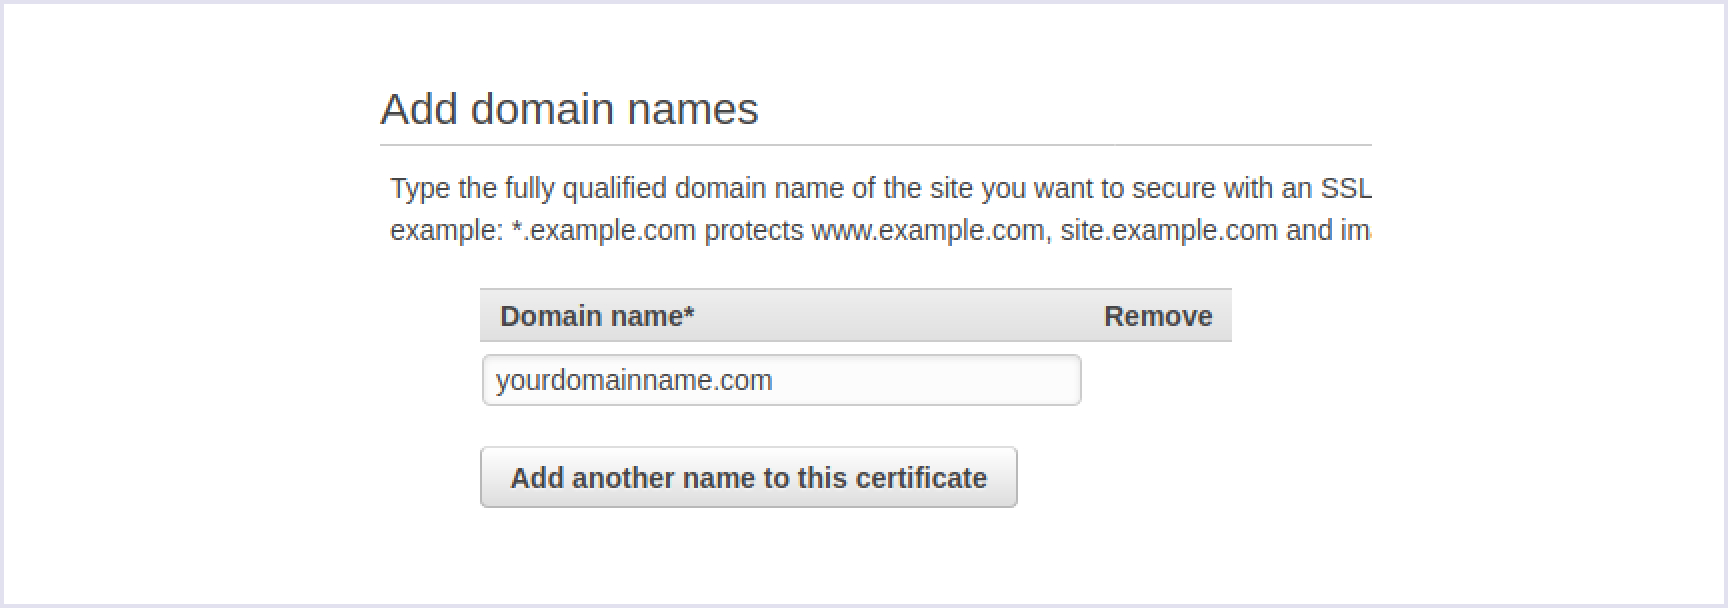 Adding a preferable domain name to be secured with an SSL